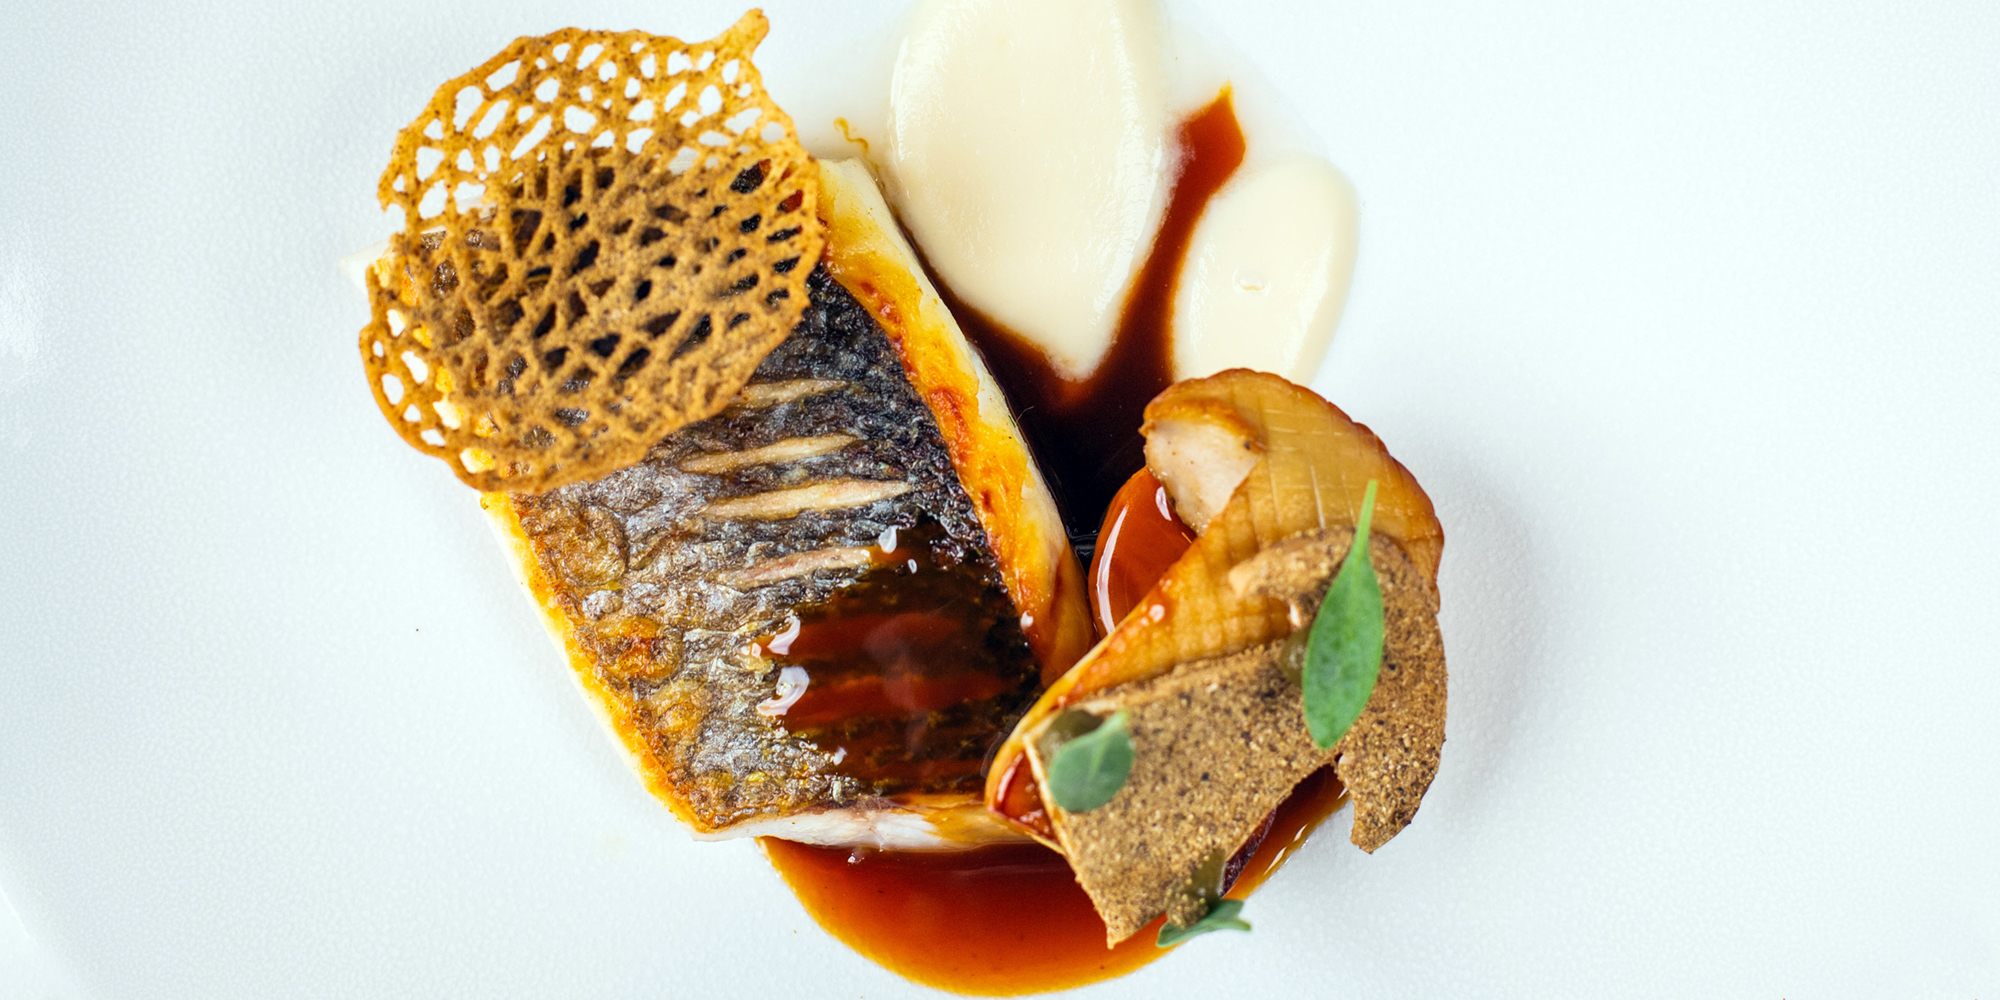 One of The Seafood Ristorante's dishes